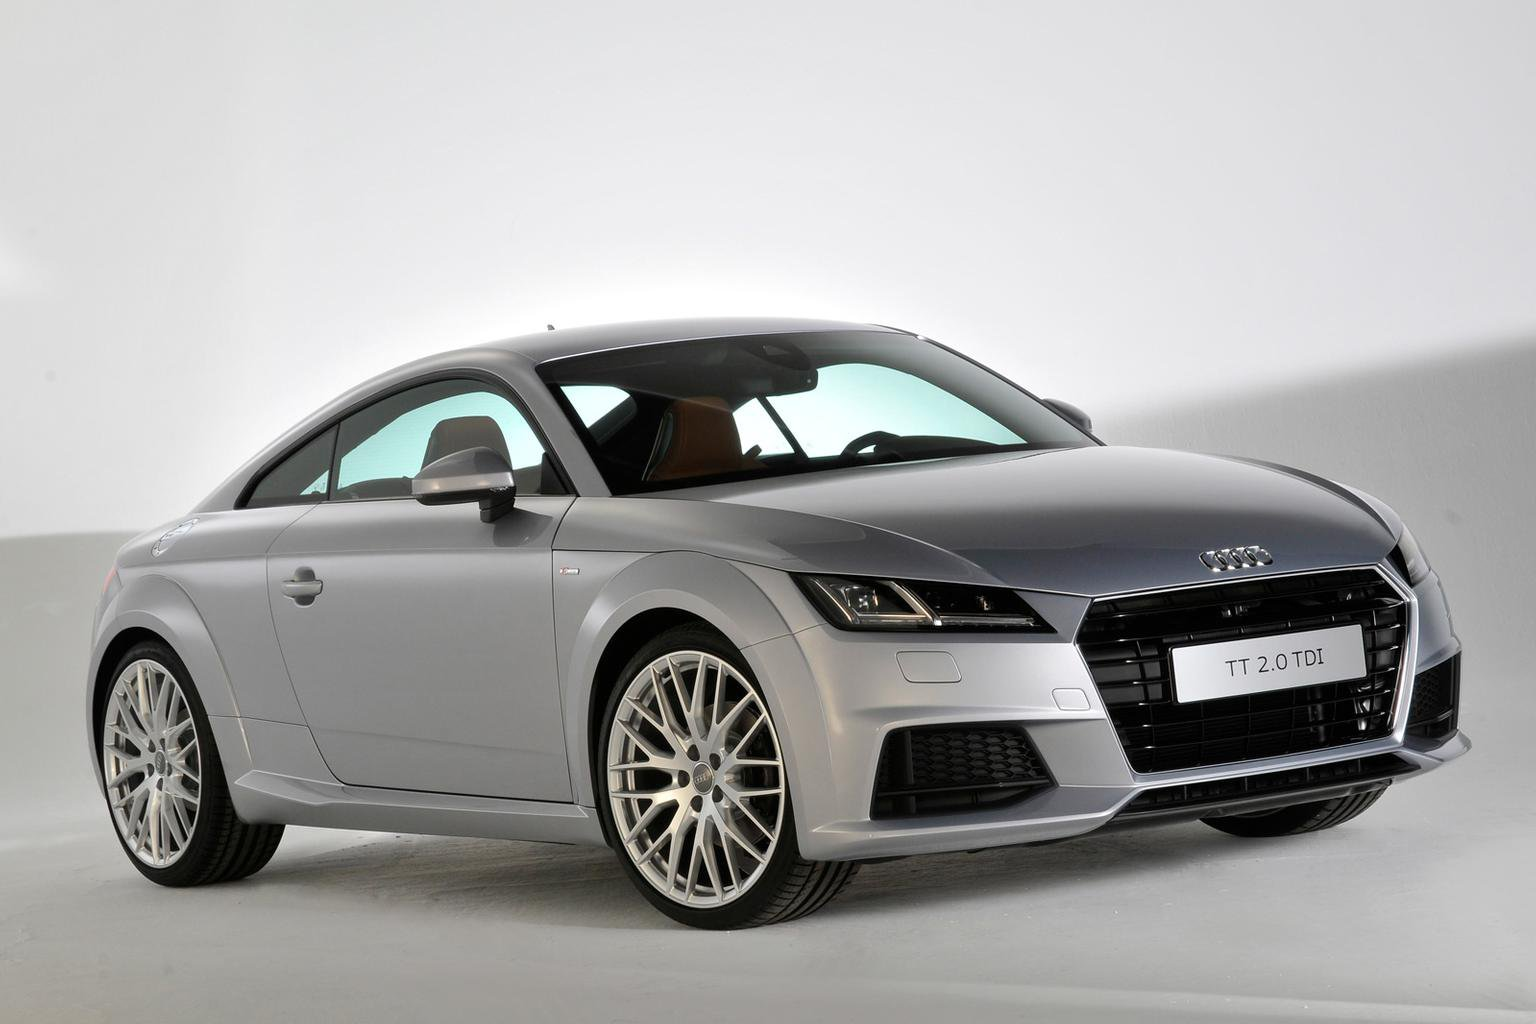 Deal of the day: New Audi TT